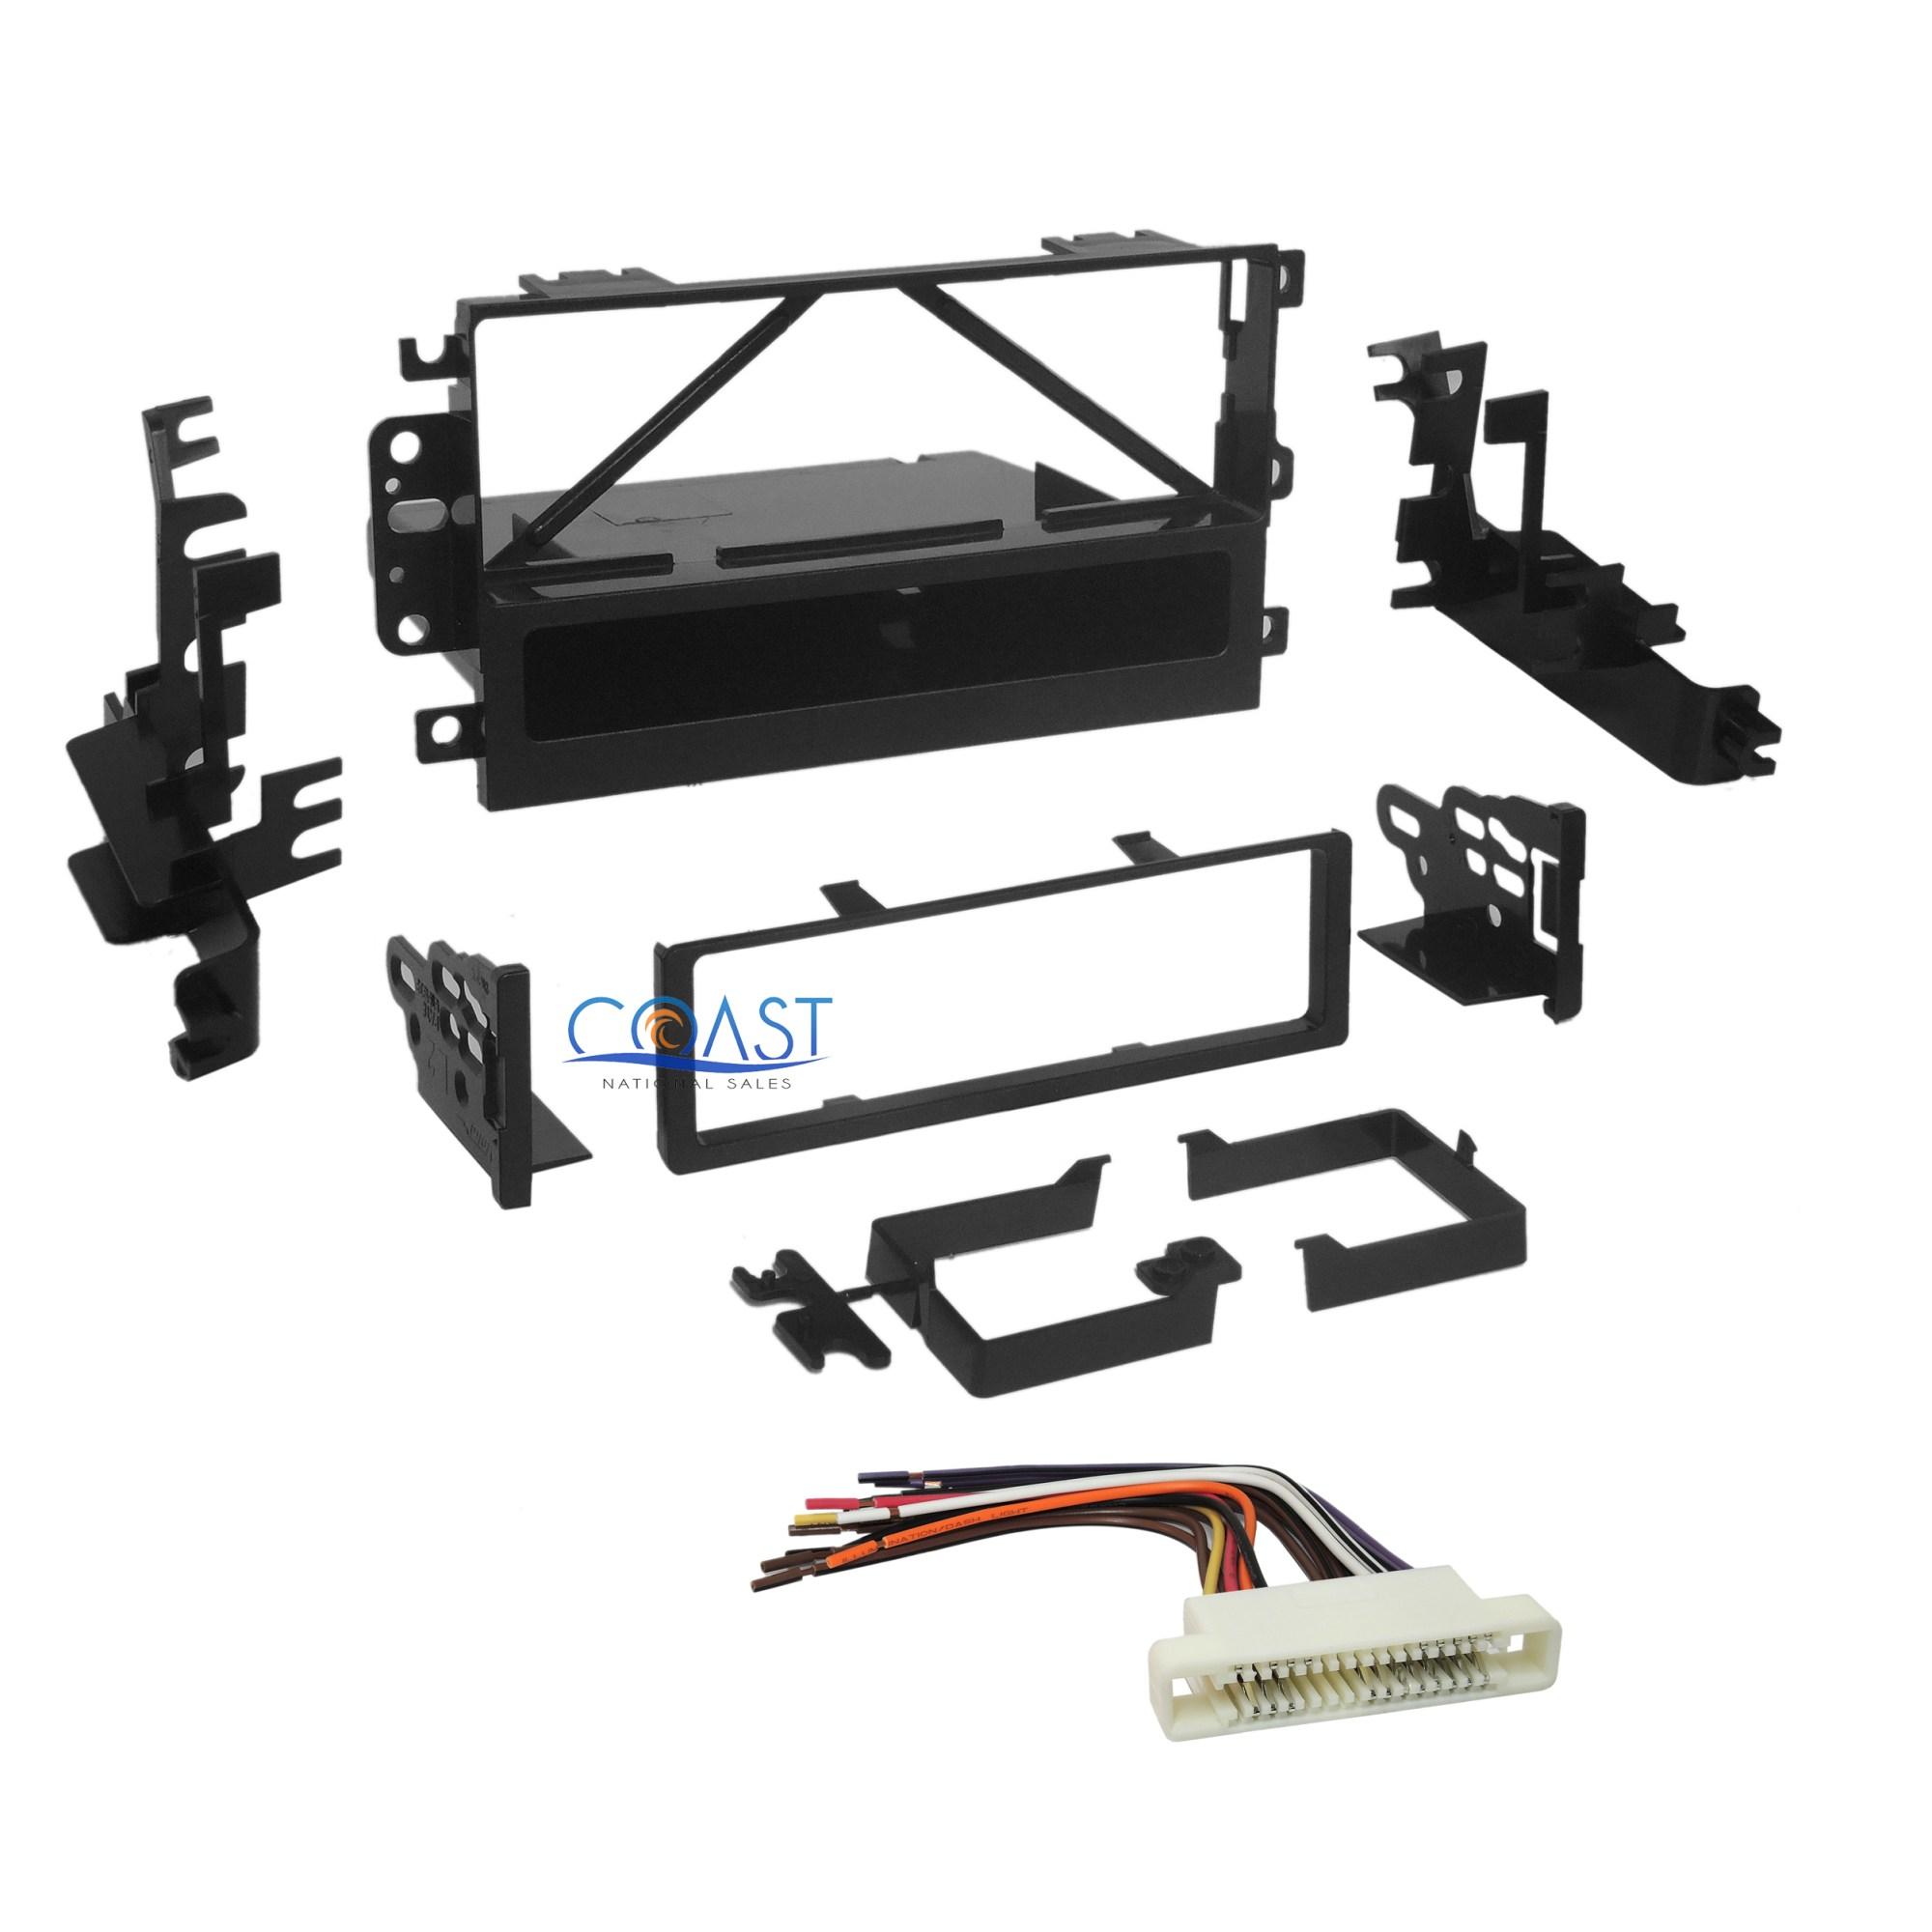 hight resolution of details about metra car stereo dash kit harness for 2000 05 buick lesabre pontiac bonneville